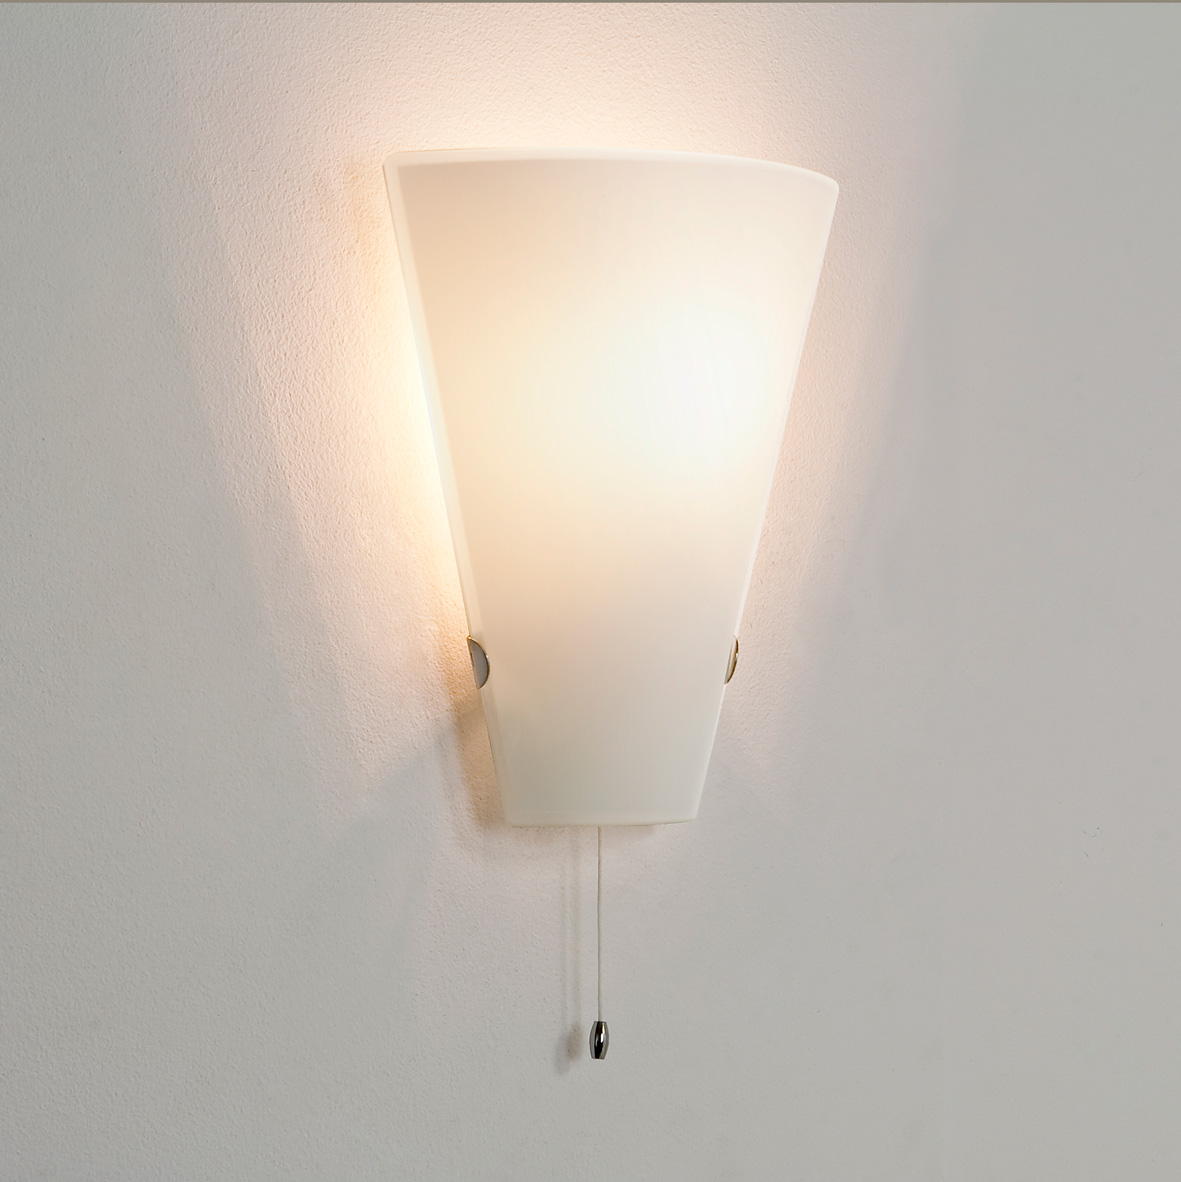 Tiffany Switched Wall Lights : dimmable pull cord switch wall light 60W E14 lamp IP20 glass eBay - Wall lights, LED bathroom ...